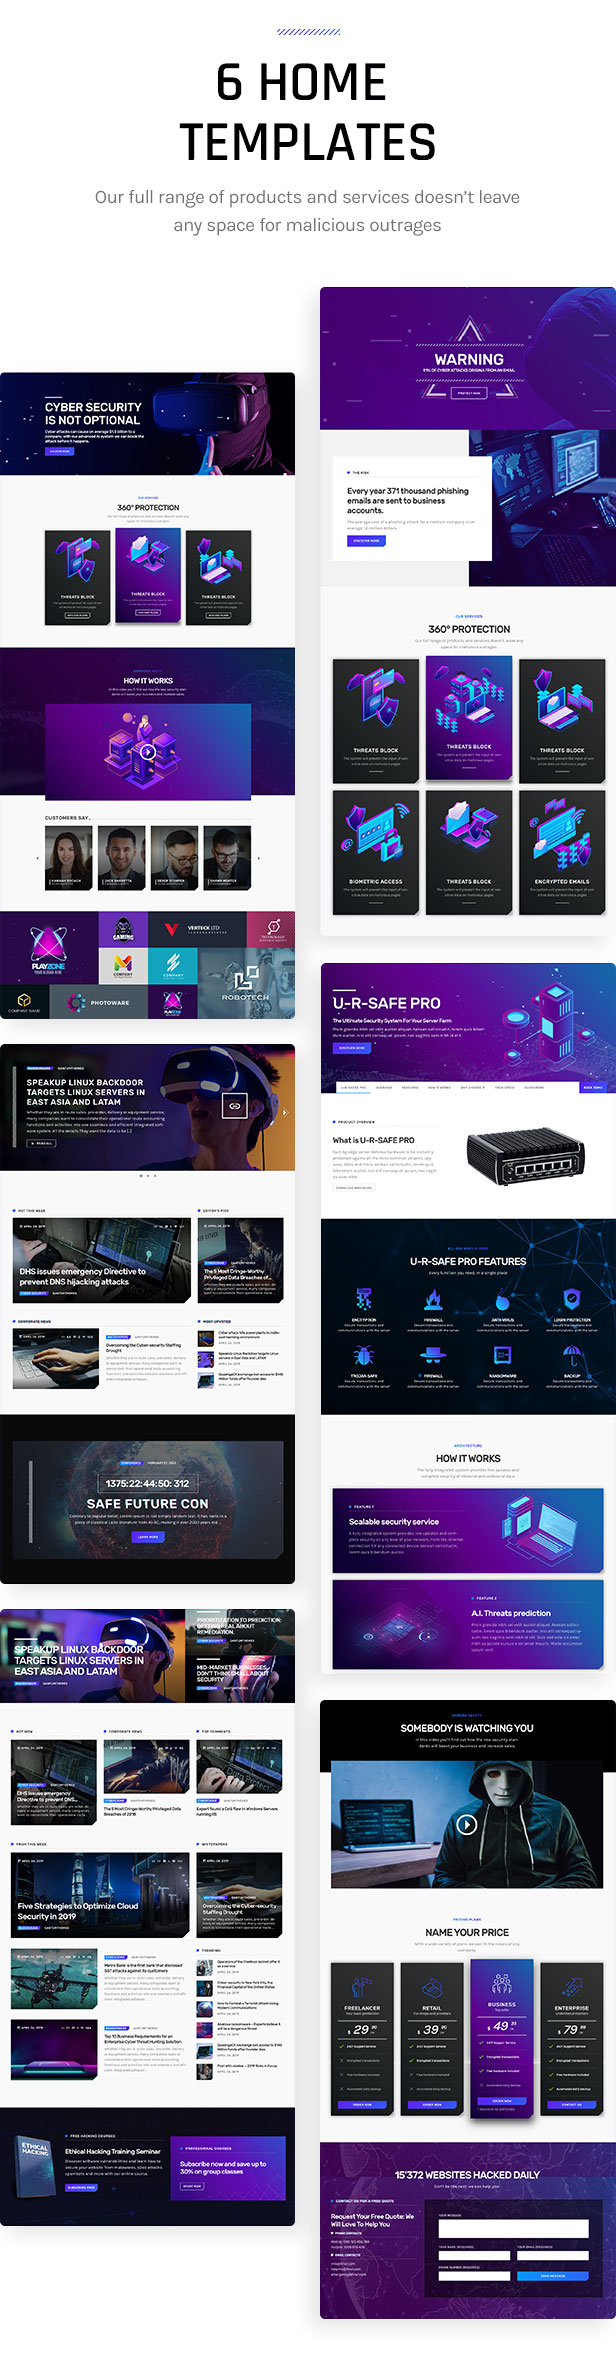 Firwl - Cyber Security WordPress Theme - 3